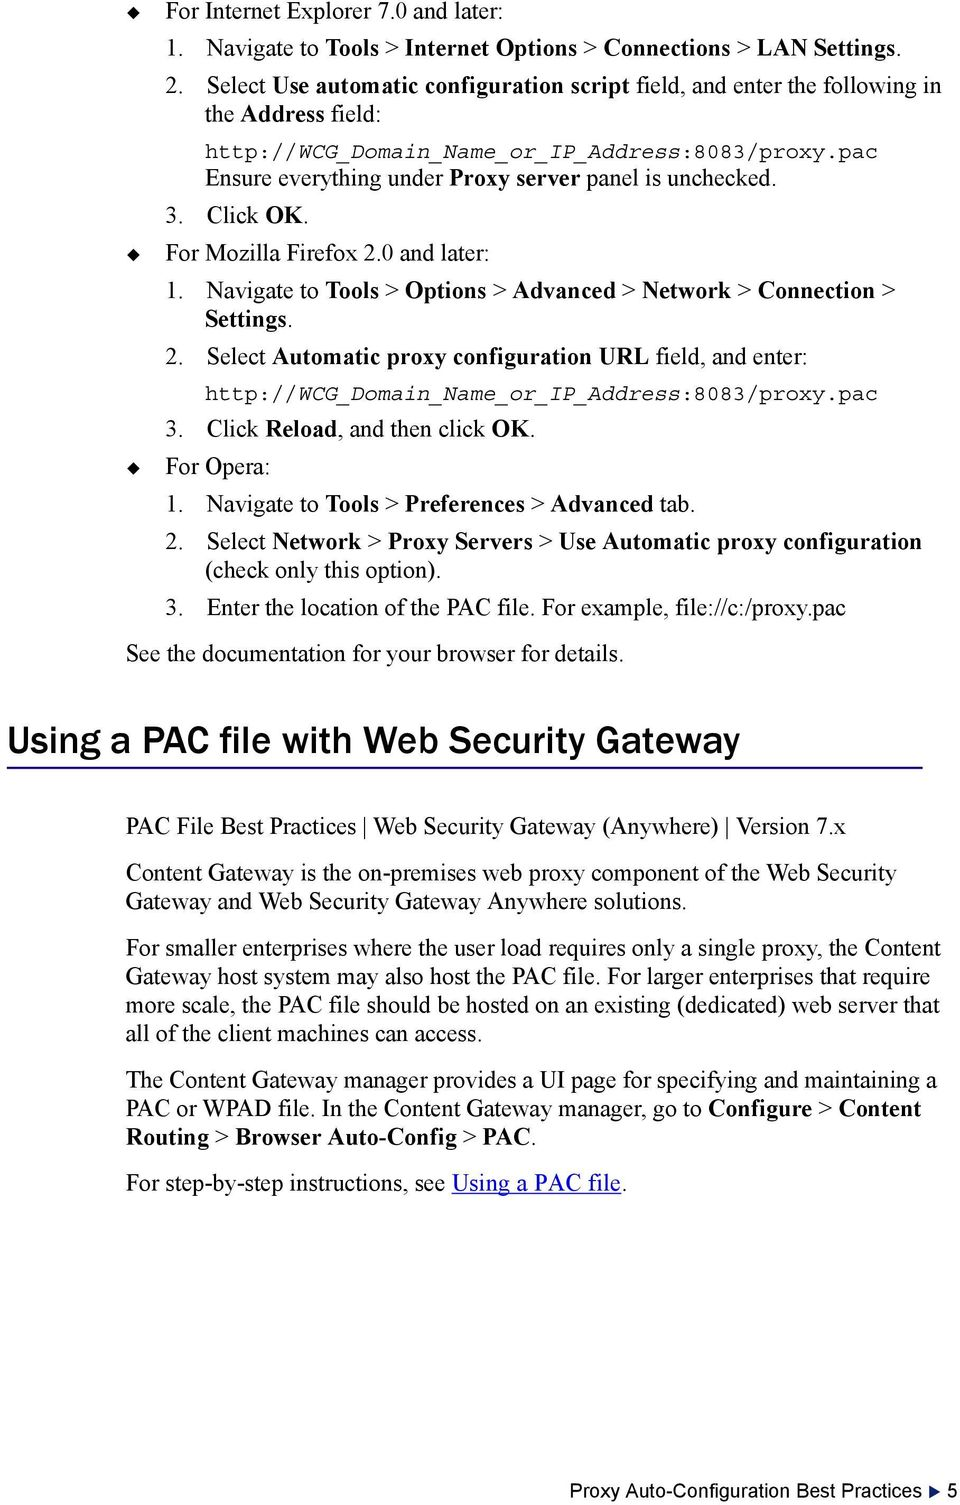 PAC File Best Practices with Web Security Gateway and Web Security